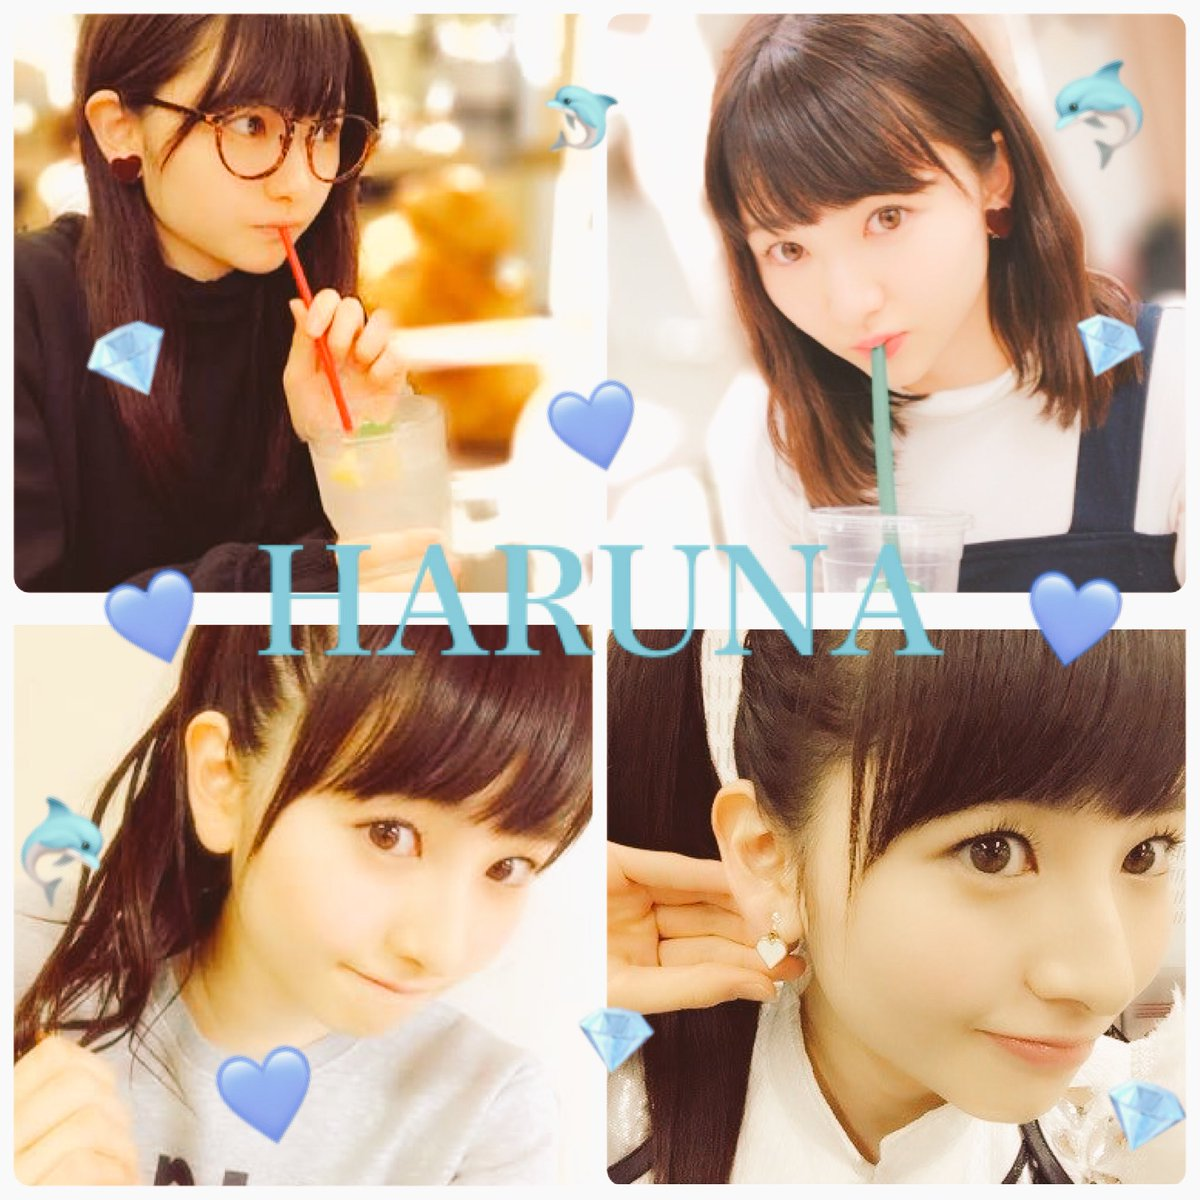 df30d6cc0f Ogata Haruna (尾形春水) - Page 203 - Morning Musume - Current and ...